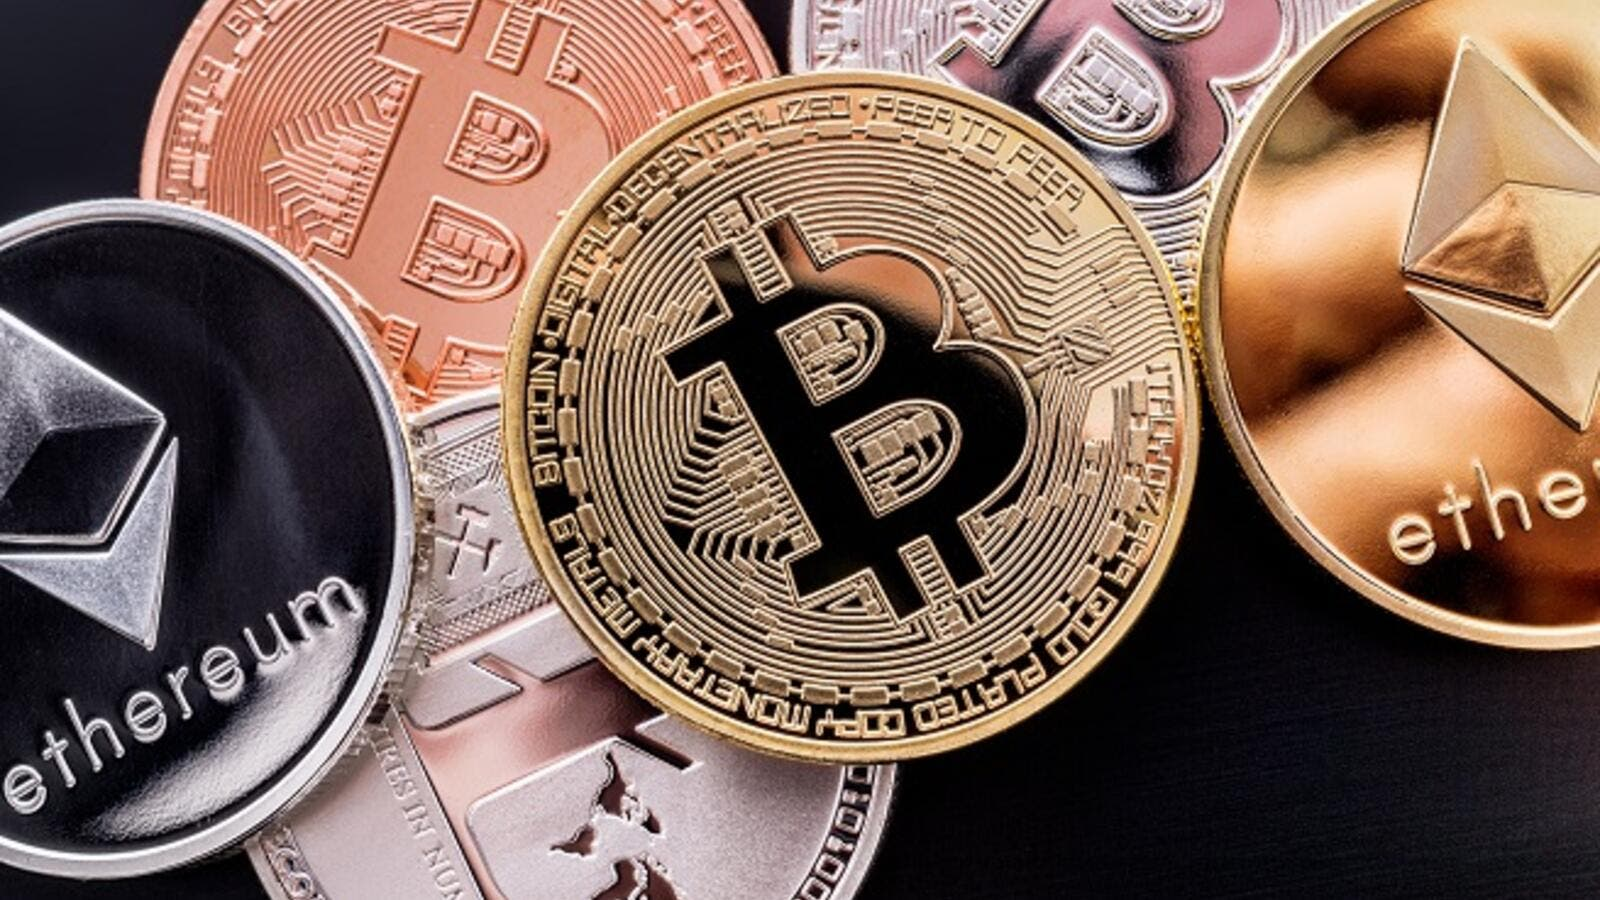 Crypto prices were under pressure in recent weeks, with Bitcoin falling 70% from its December high just short of $20,000. (Shutterstock)